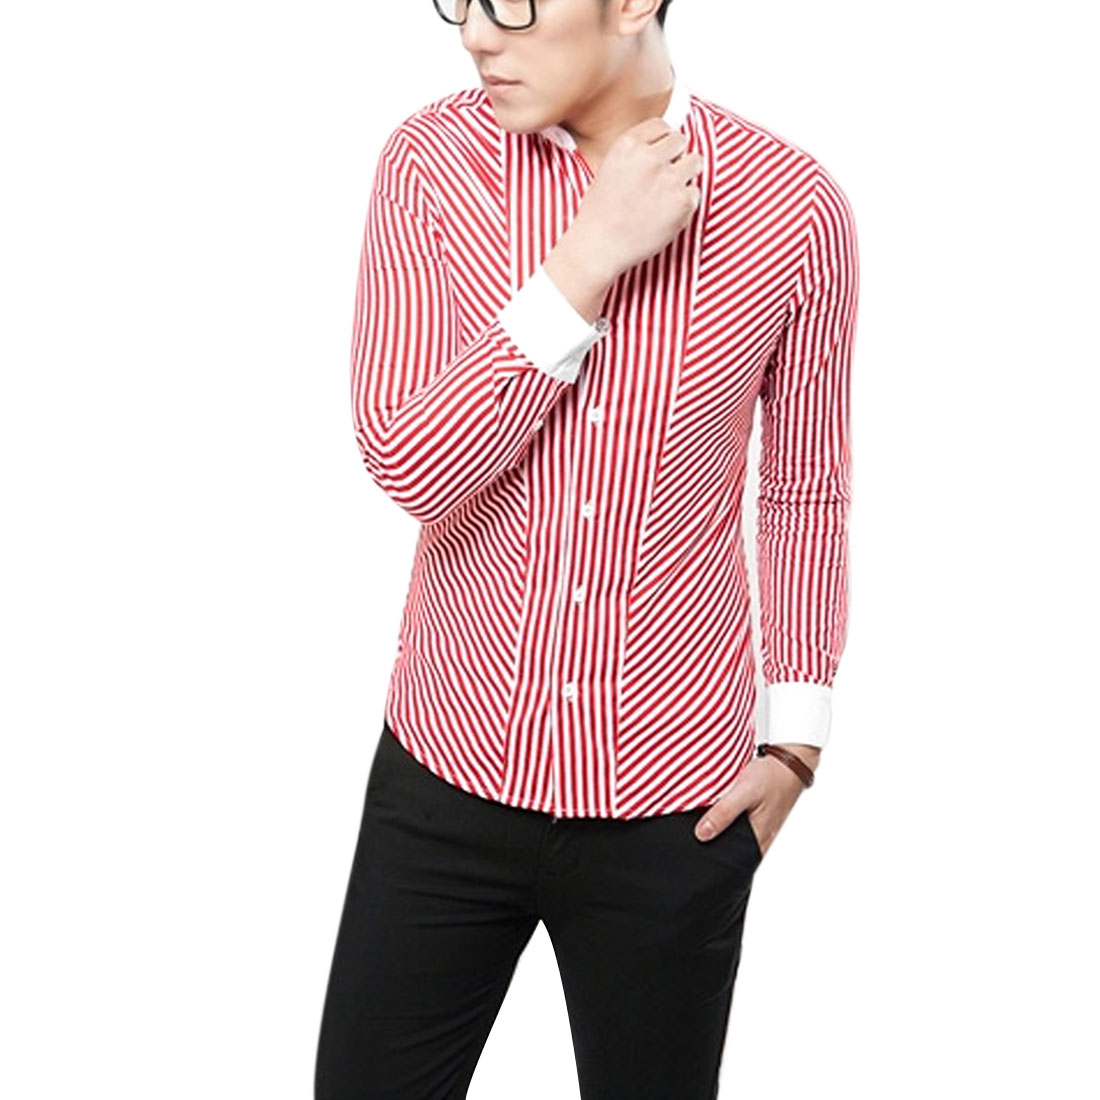 Men Stand Collar Buttons Cuff Red White Stripe Tee Shirt M